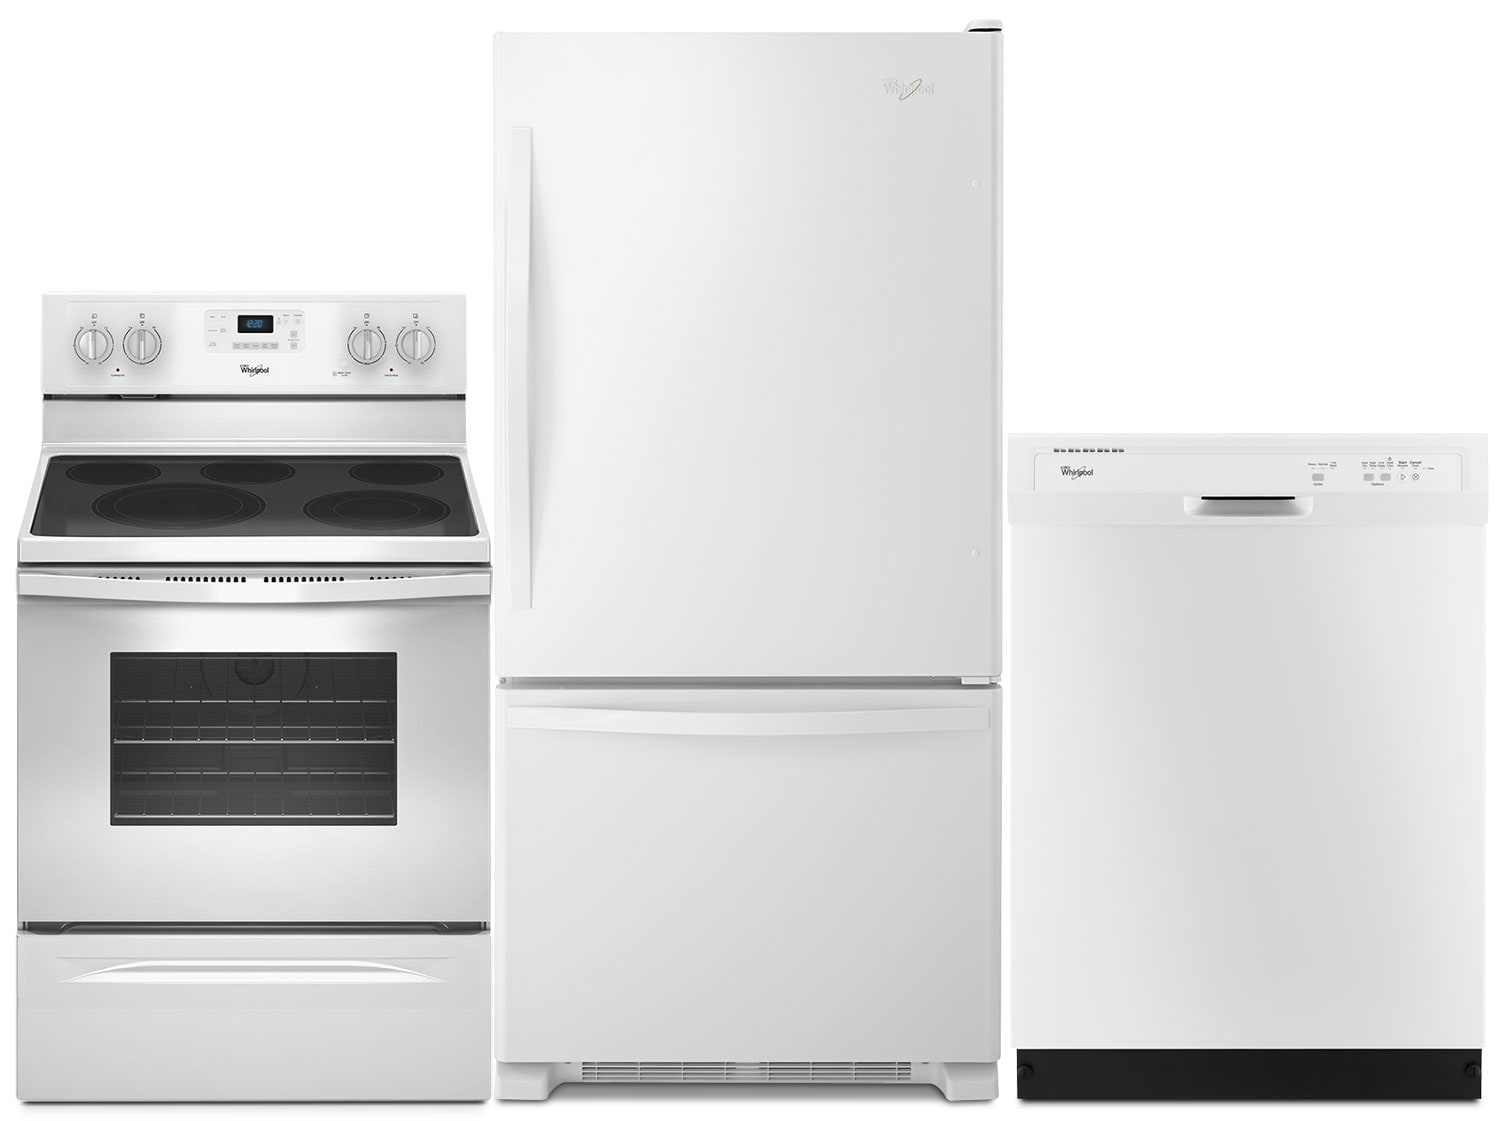 Whirlpool® 19 Cu. Ft. Refrigerator, 5.3 Cu. Ft. Electric Range and Dishwasher Package